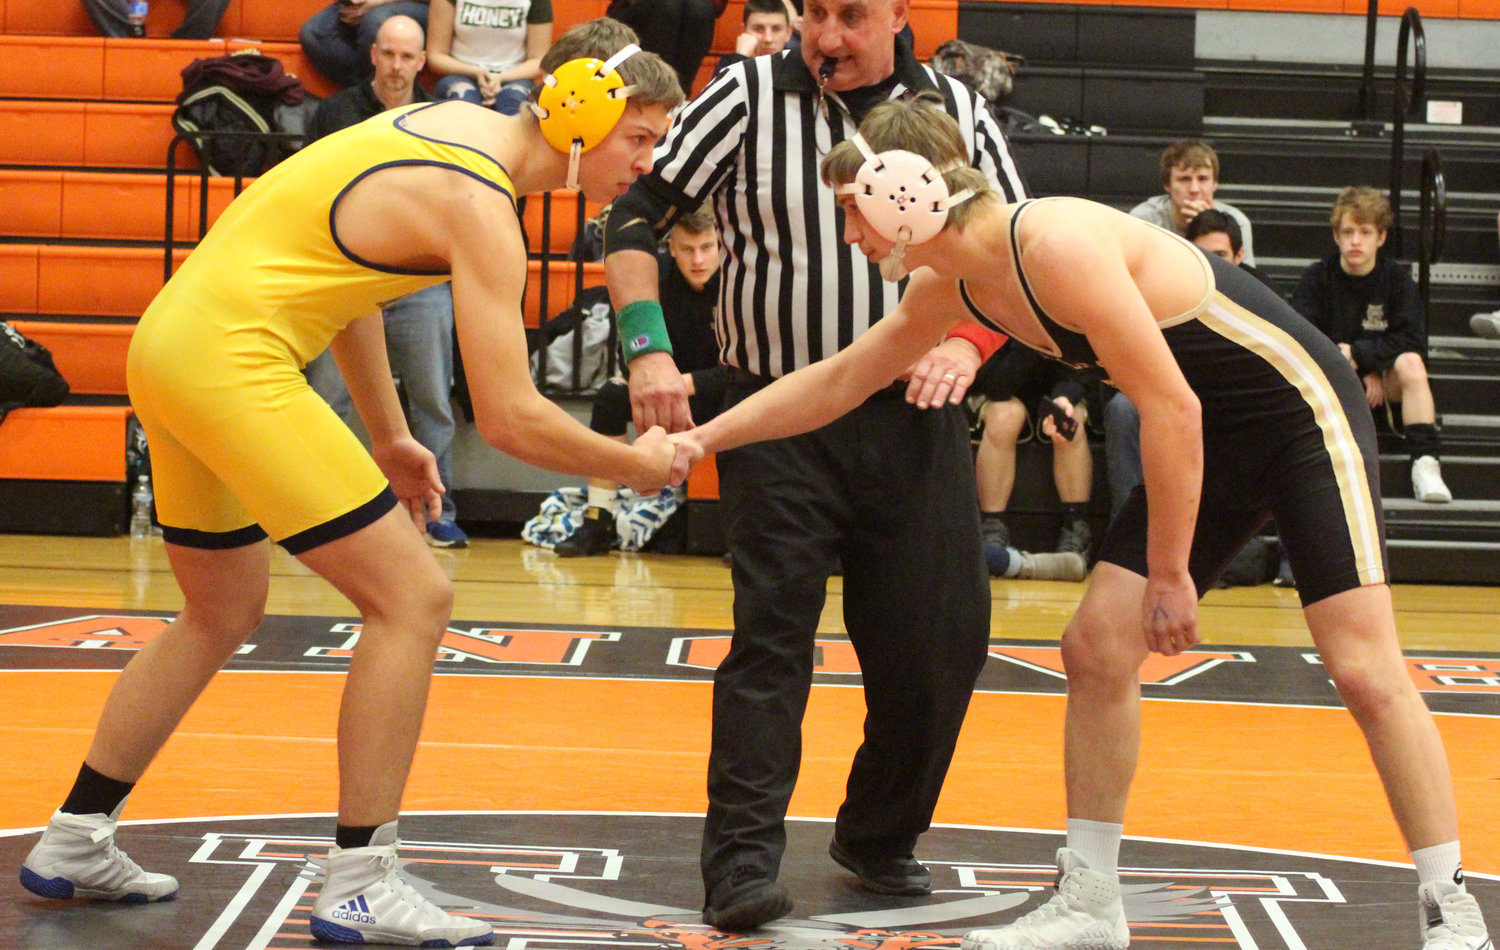 Jules Stevens, a foreign exchange student from Germany, got his first taste of Pennsylvania wrestling at the Snacktown Duals.